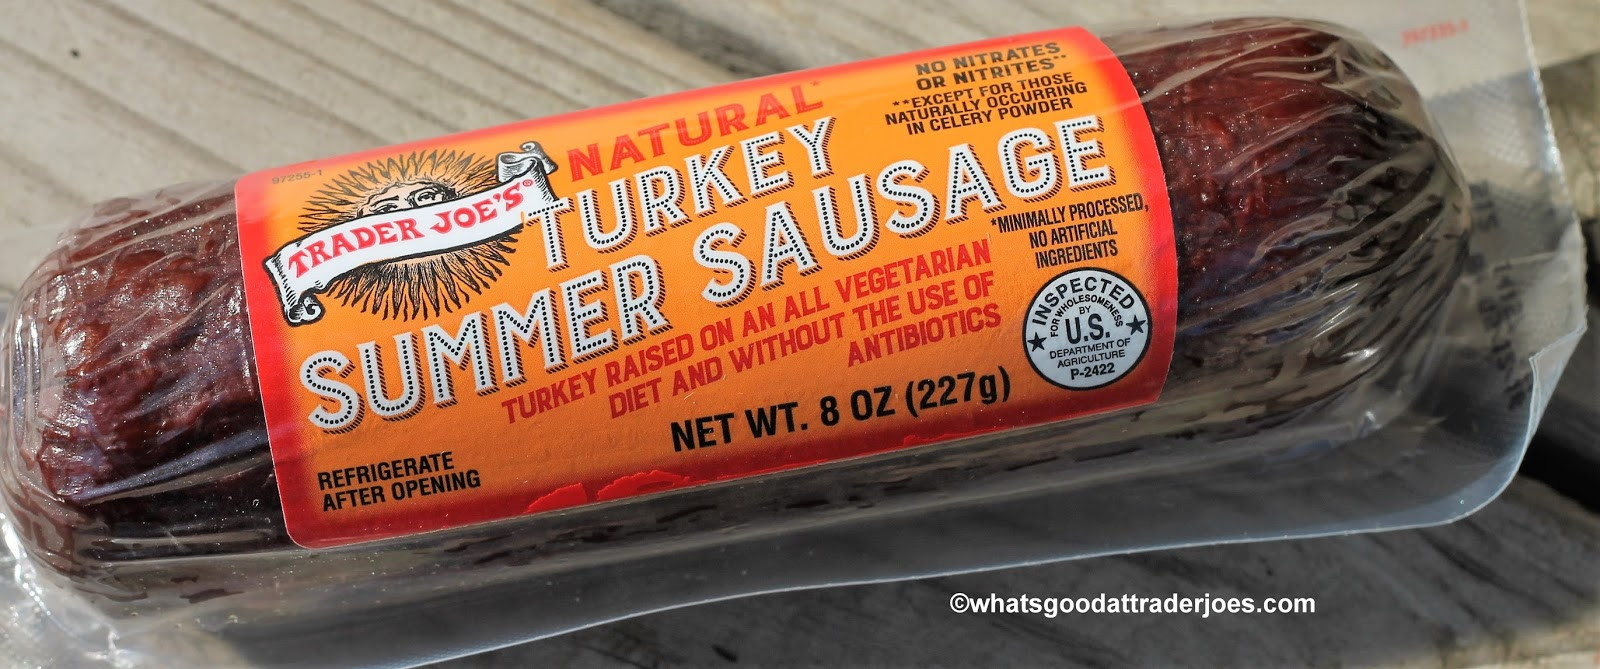 Hickory Farms Turkey Summer Sausage  Hickory Farms Turkey Summer Sausage Nutritional